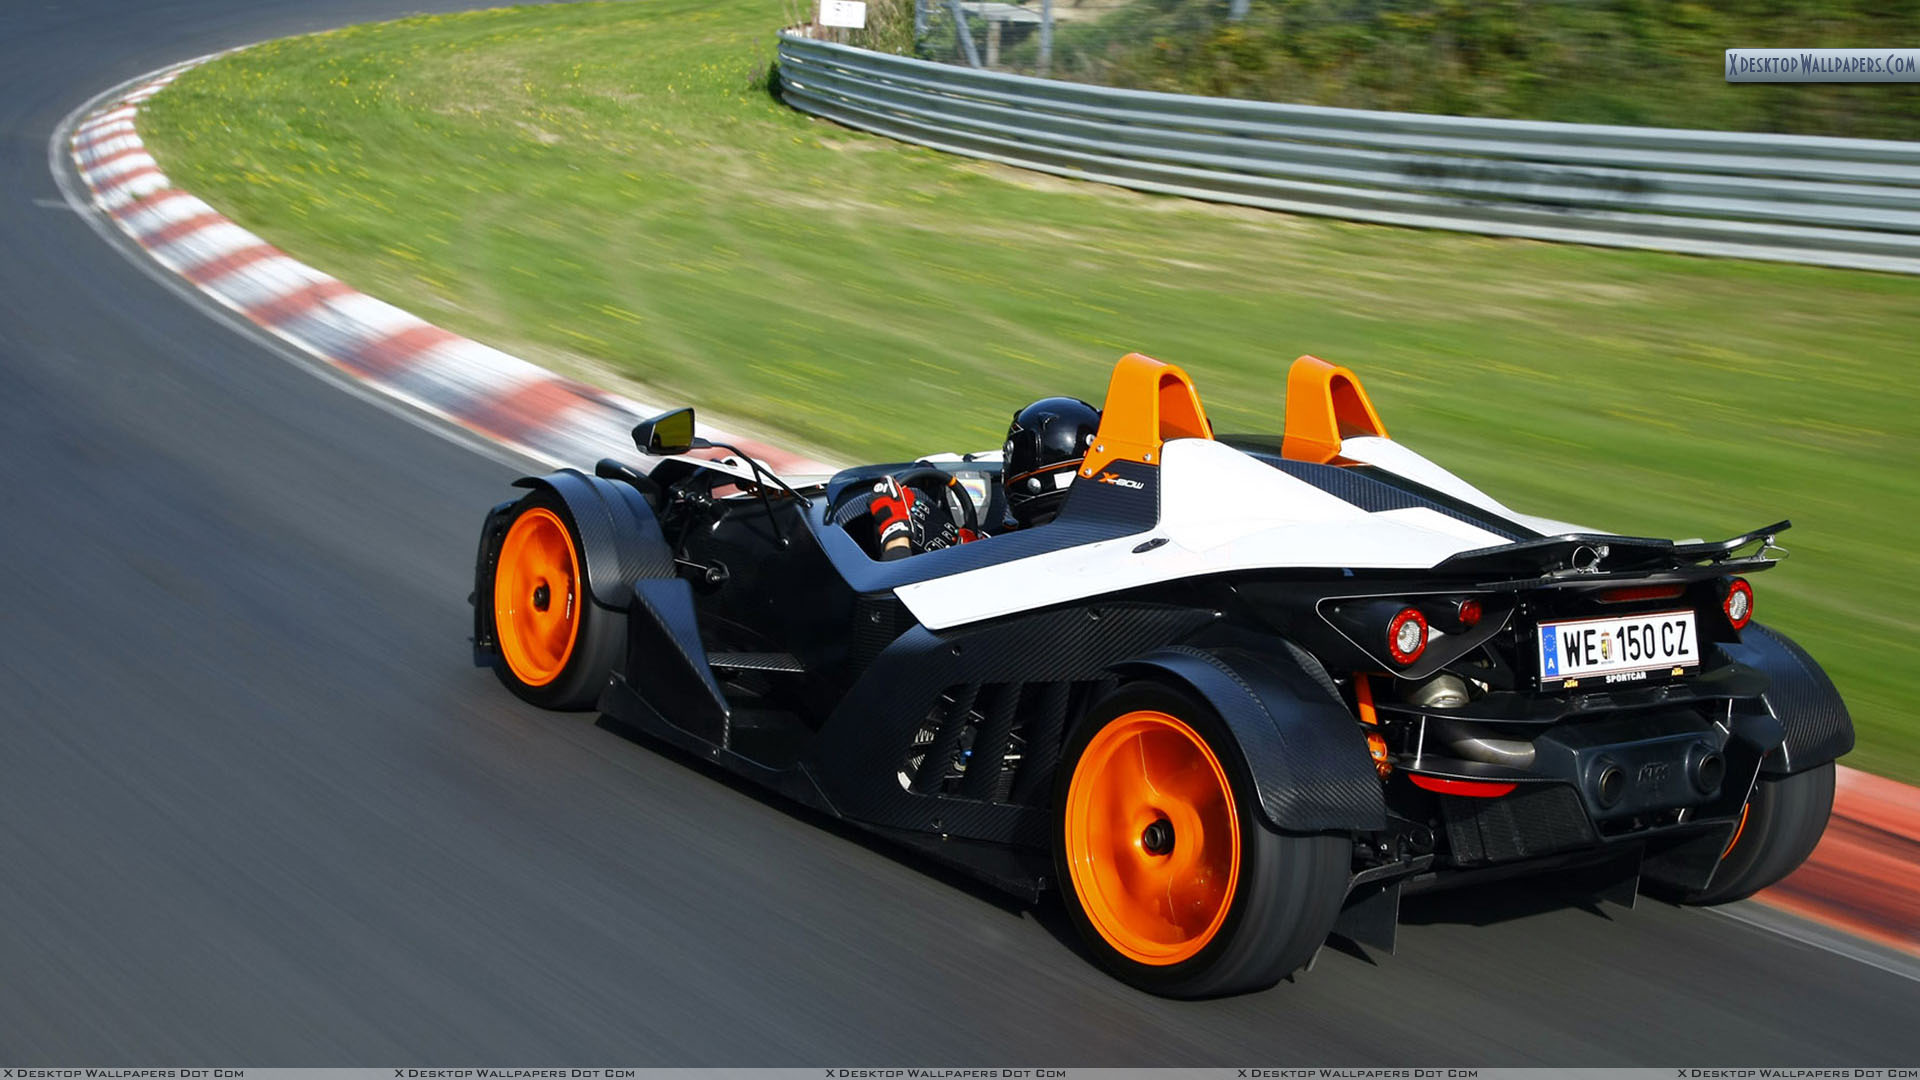 Ktm X Bow Side Back Pose On Racing Tracks Wallpaper